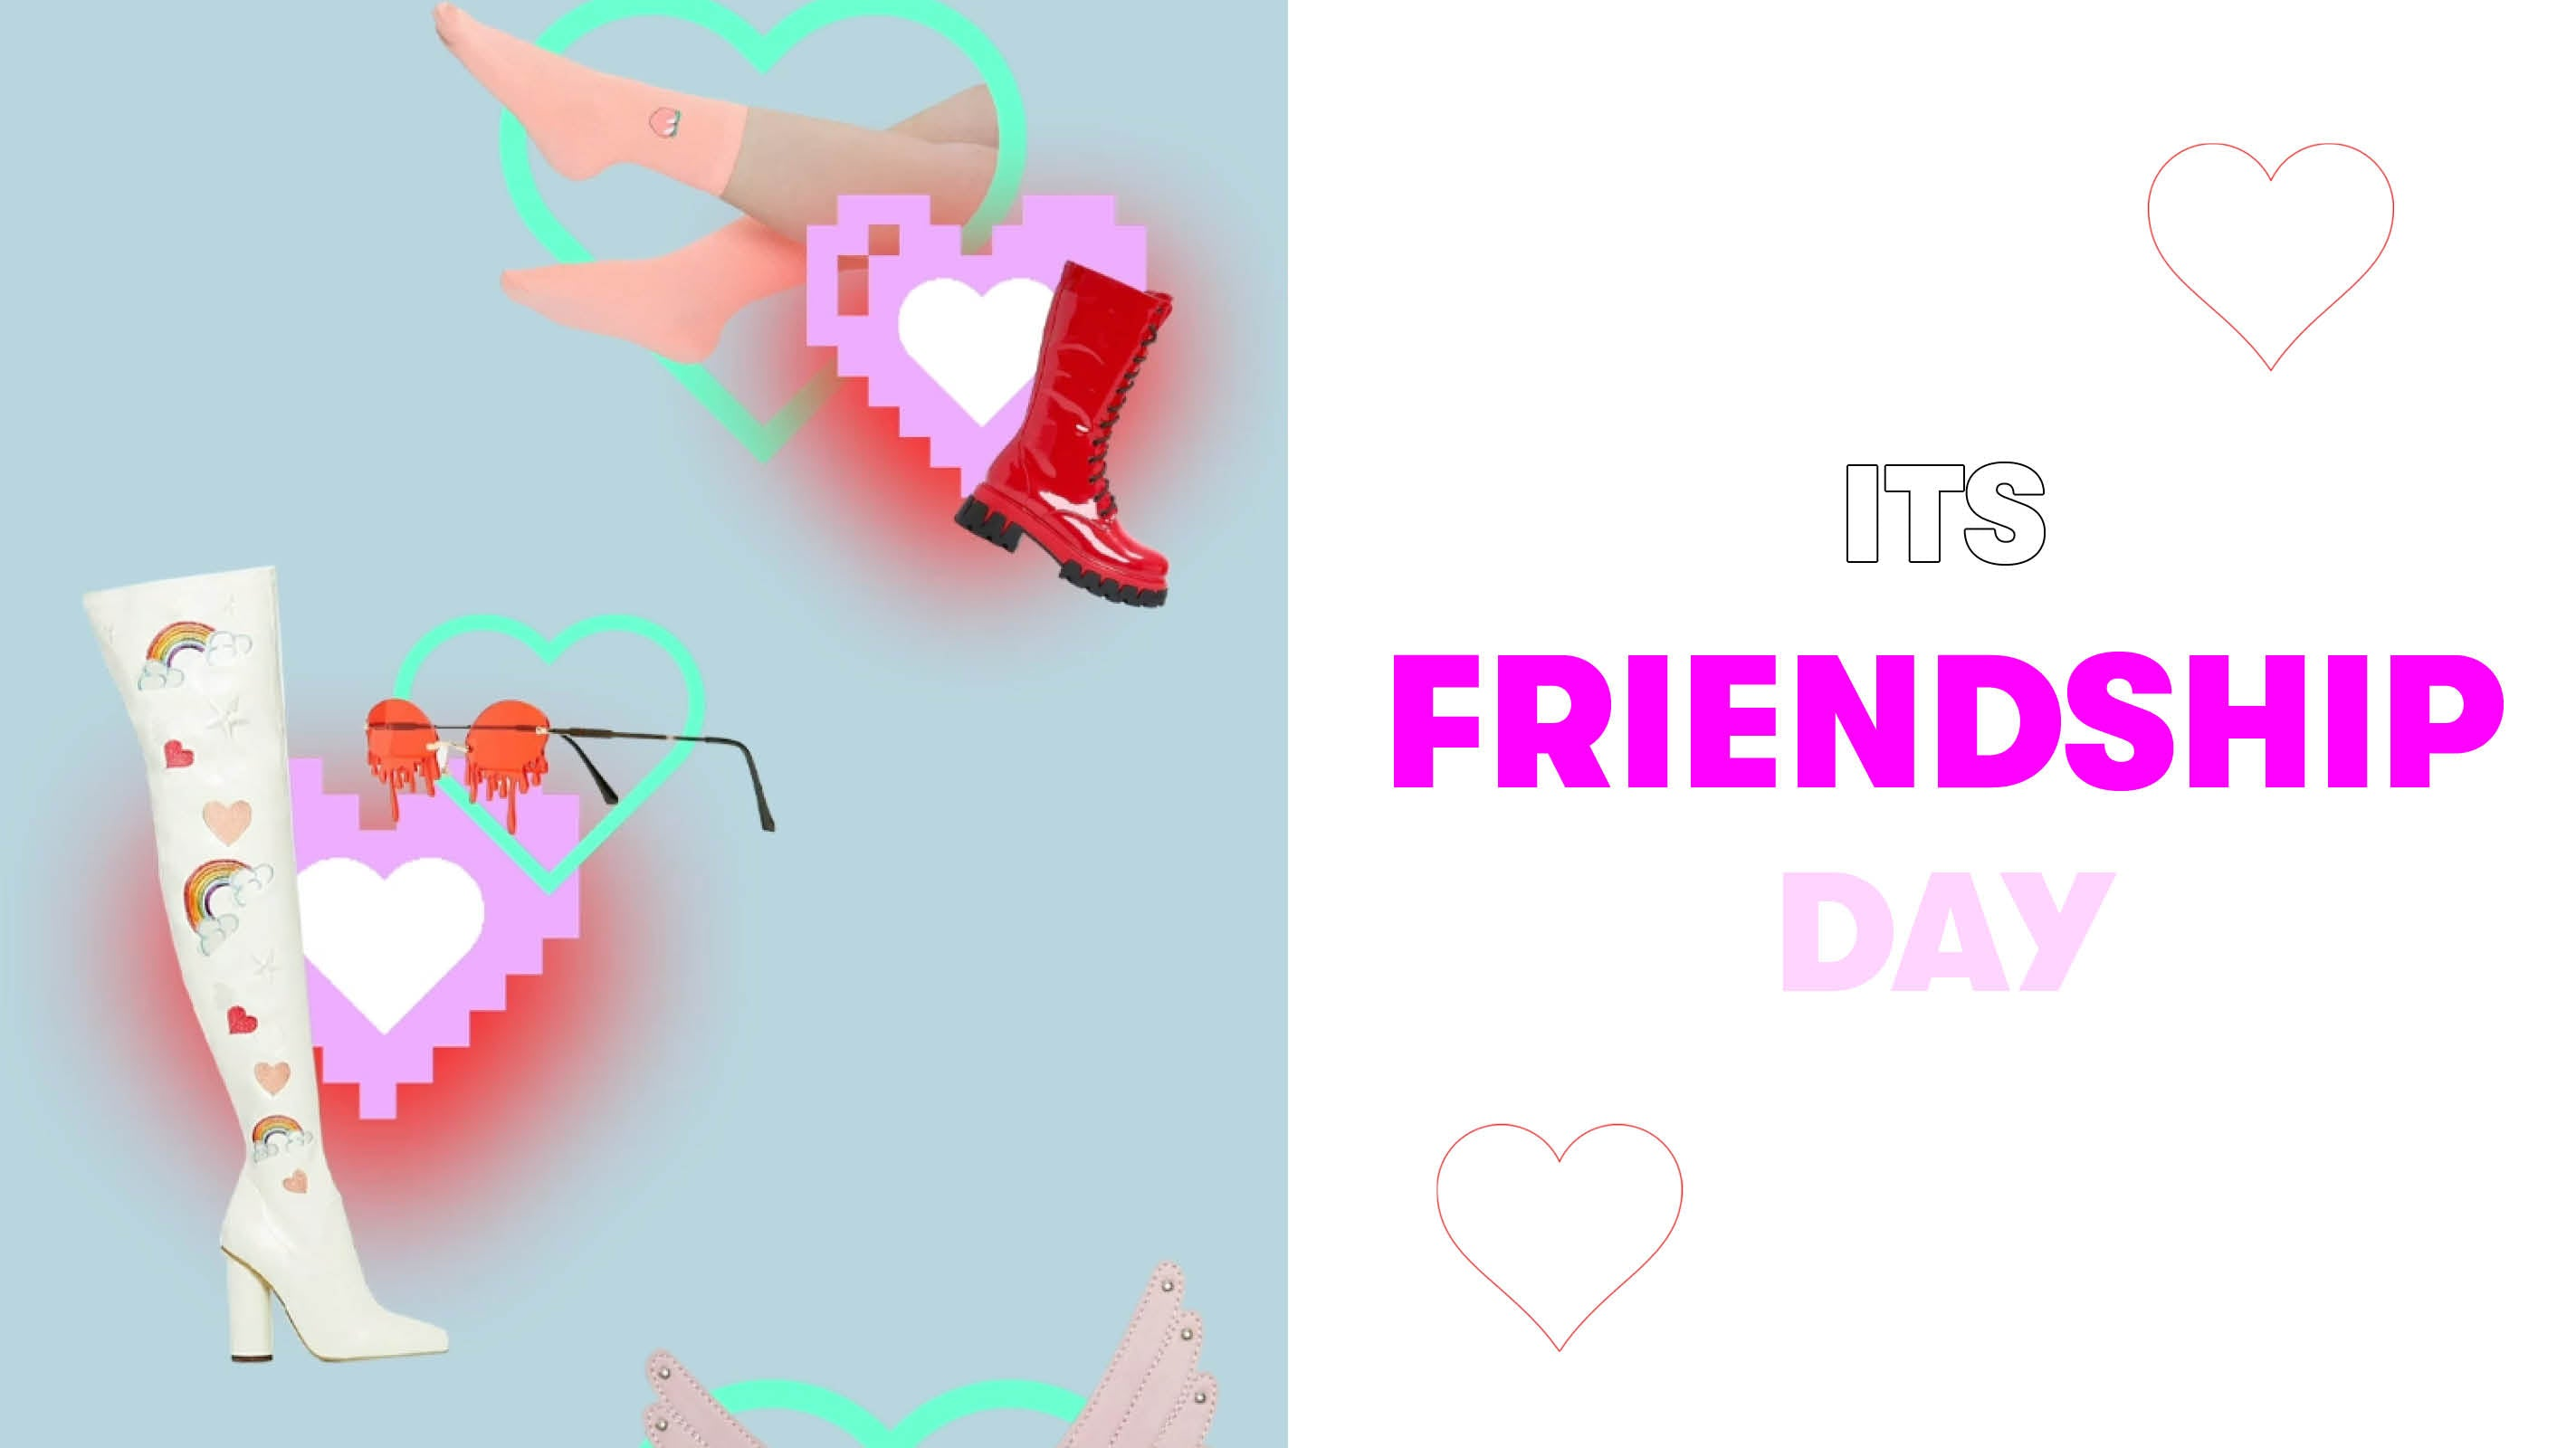 IT'S FRIENDSHIP DAY